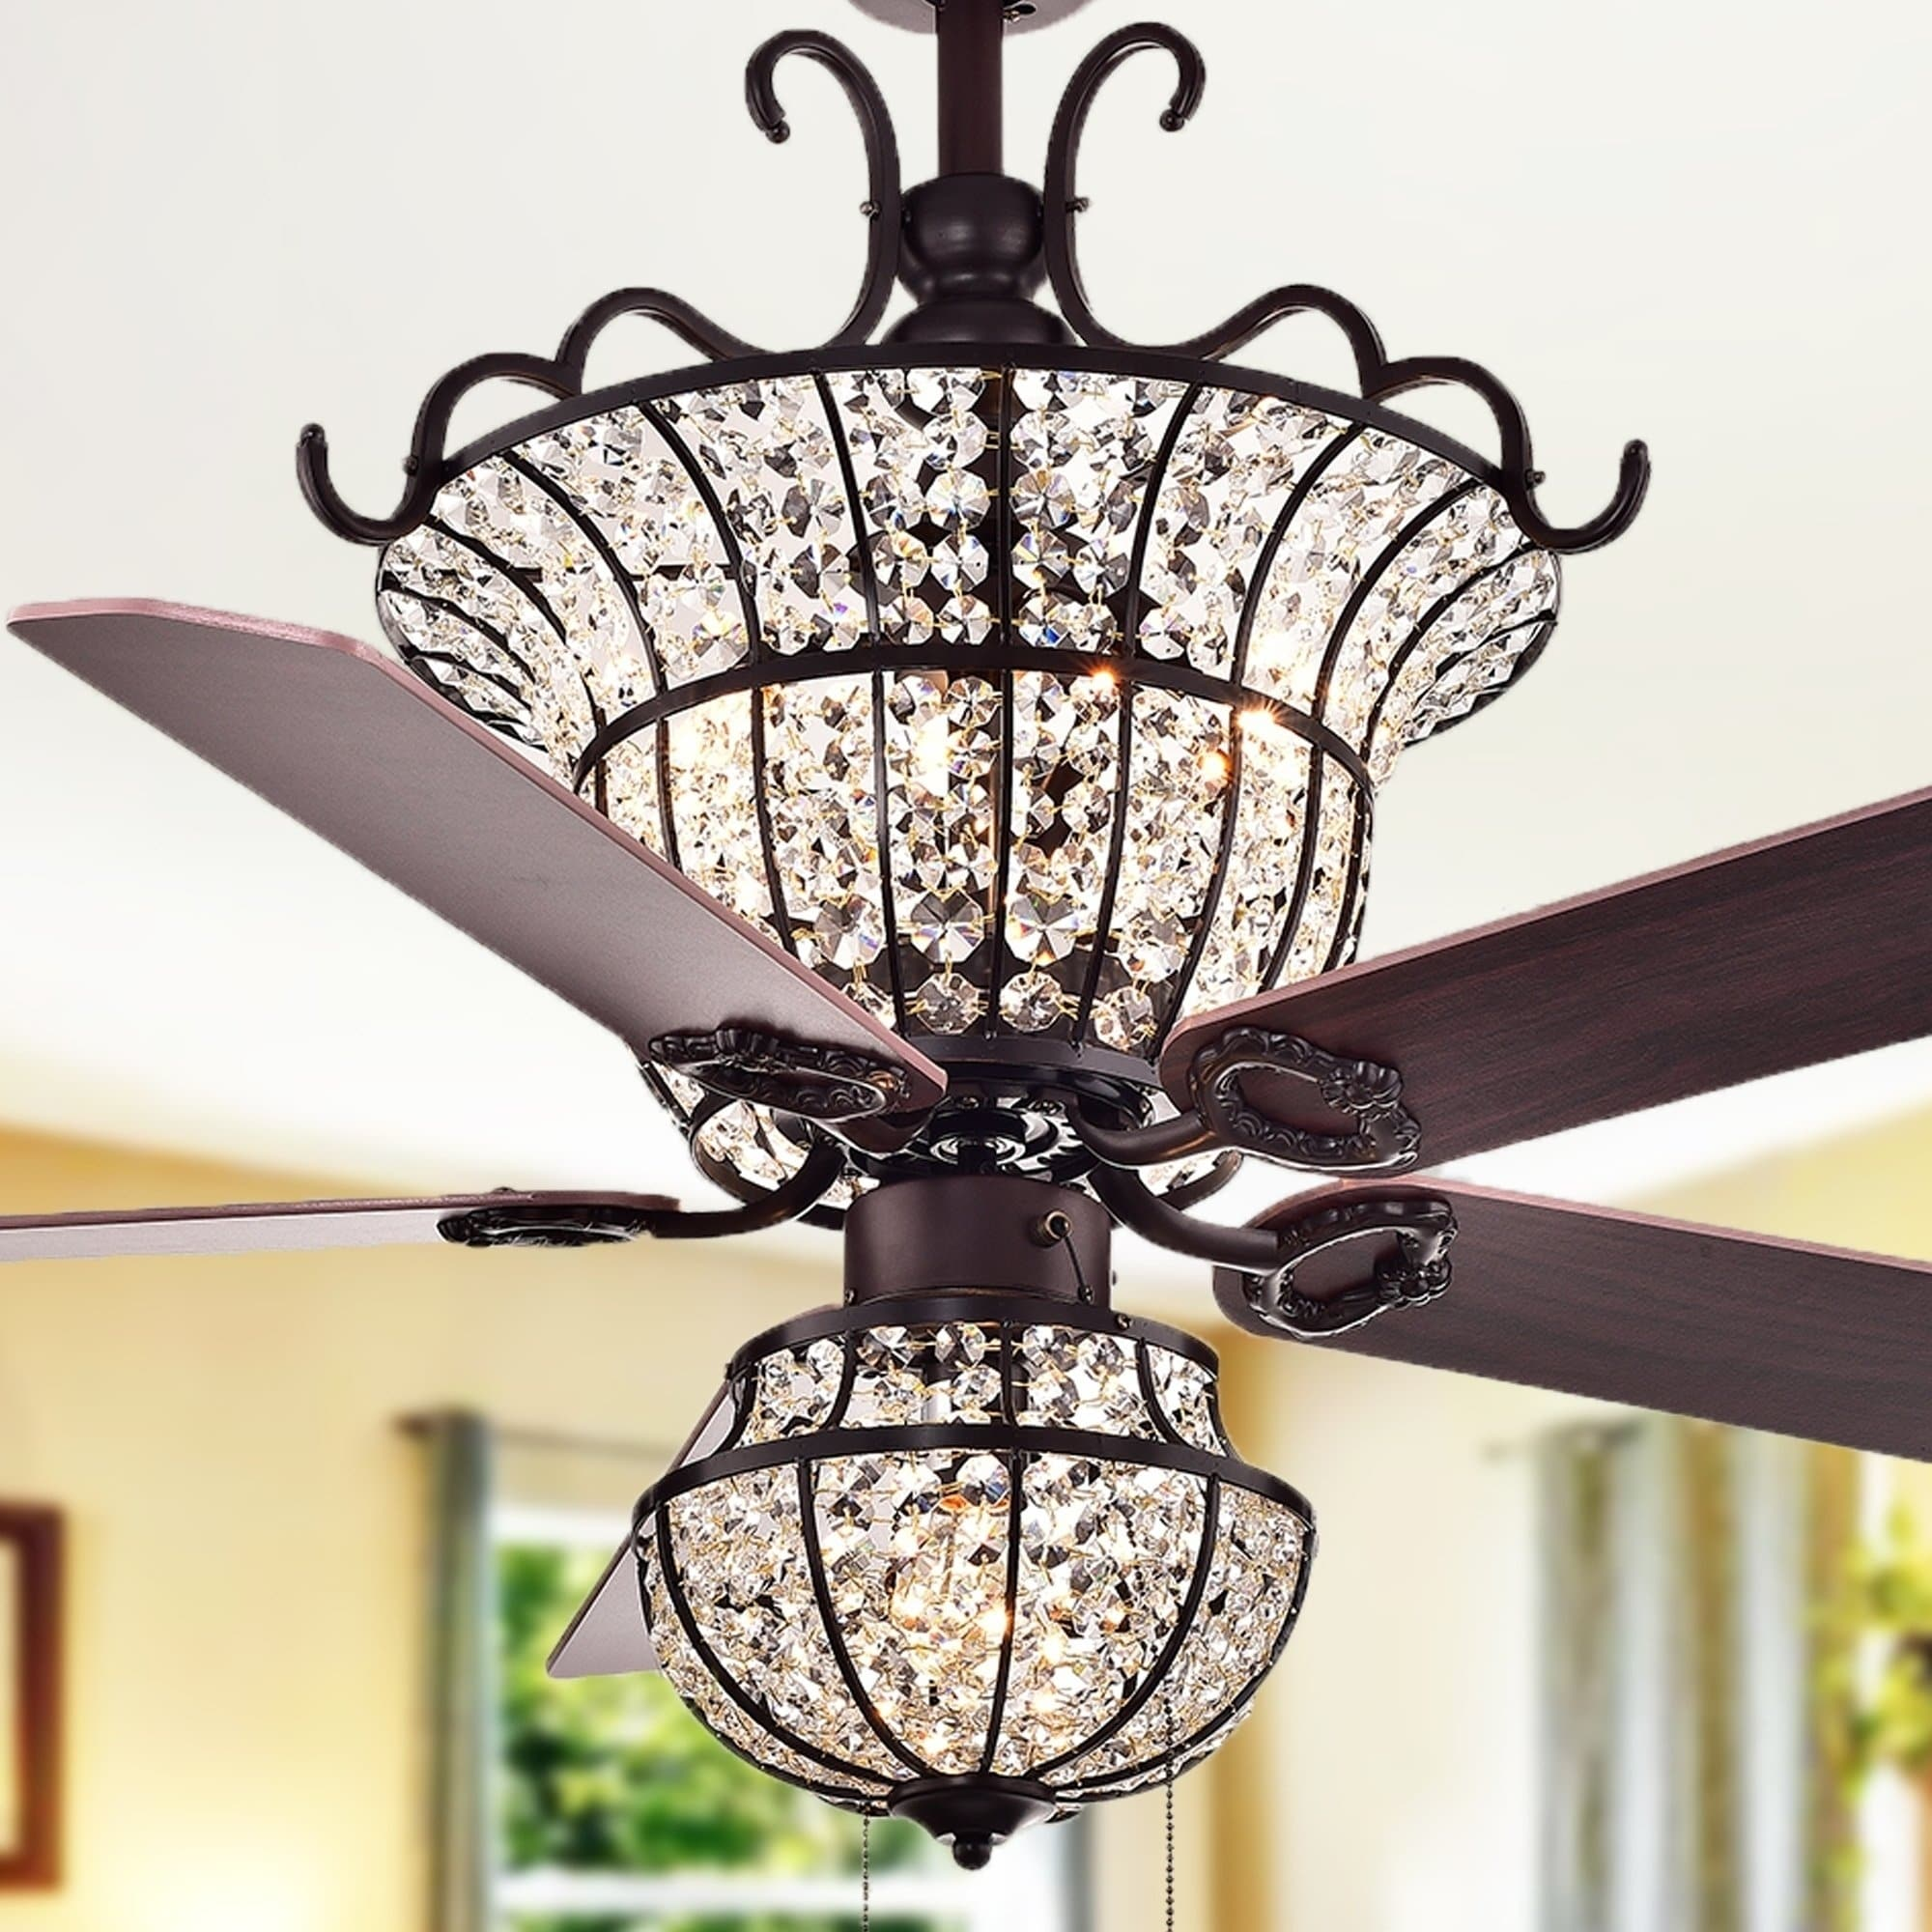 Vintage Looking Fan Charla 4 Light Crystal 5 Blade 52 Inch Chandelier Ceiling Fan Optional Remote 2 Color Option Blades